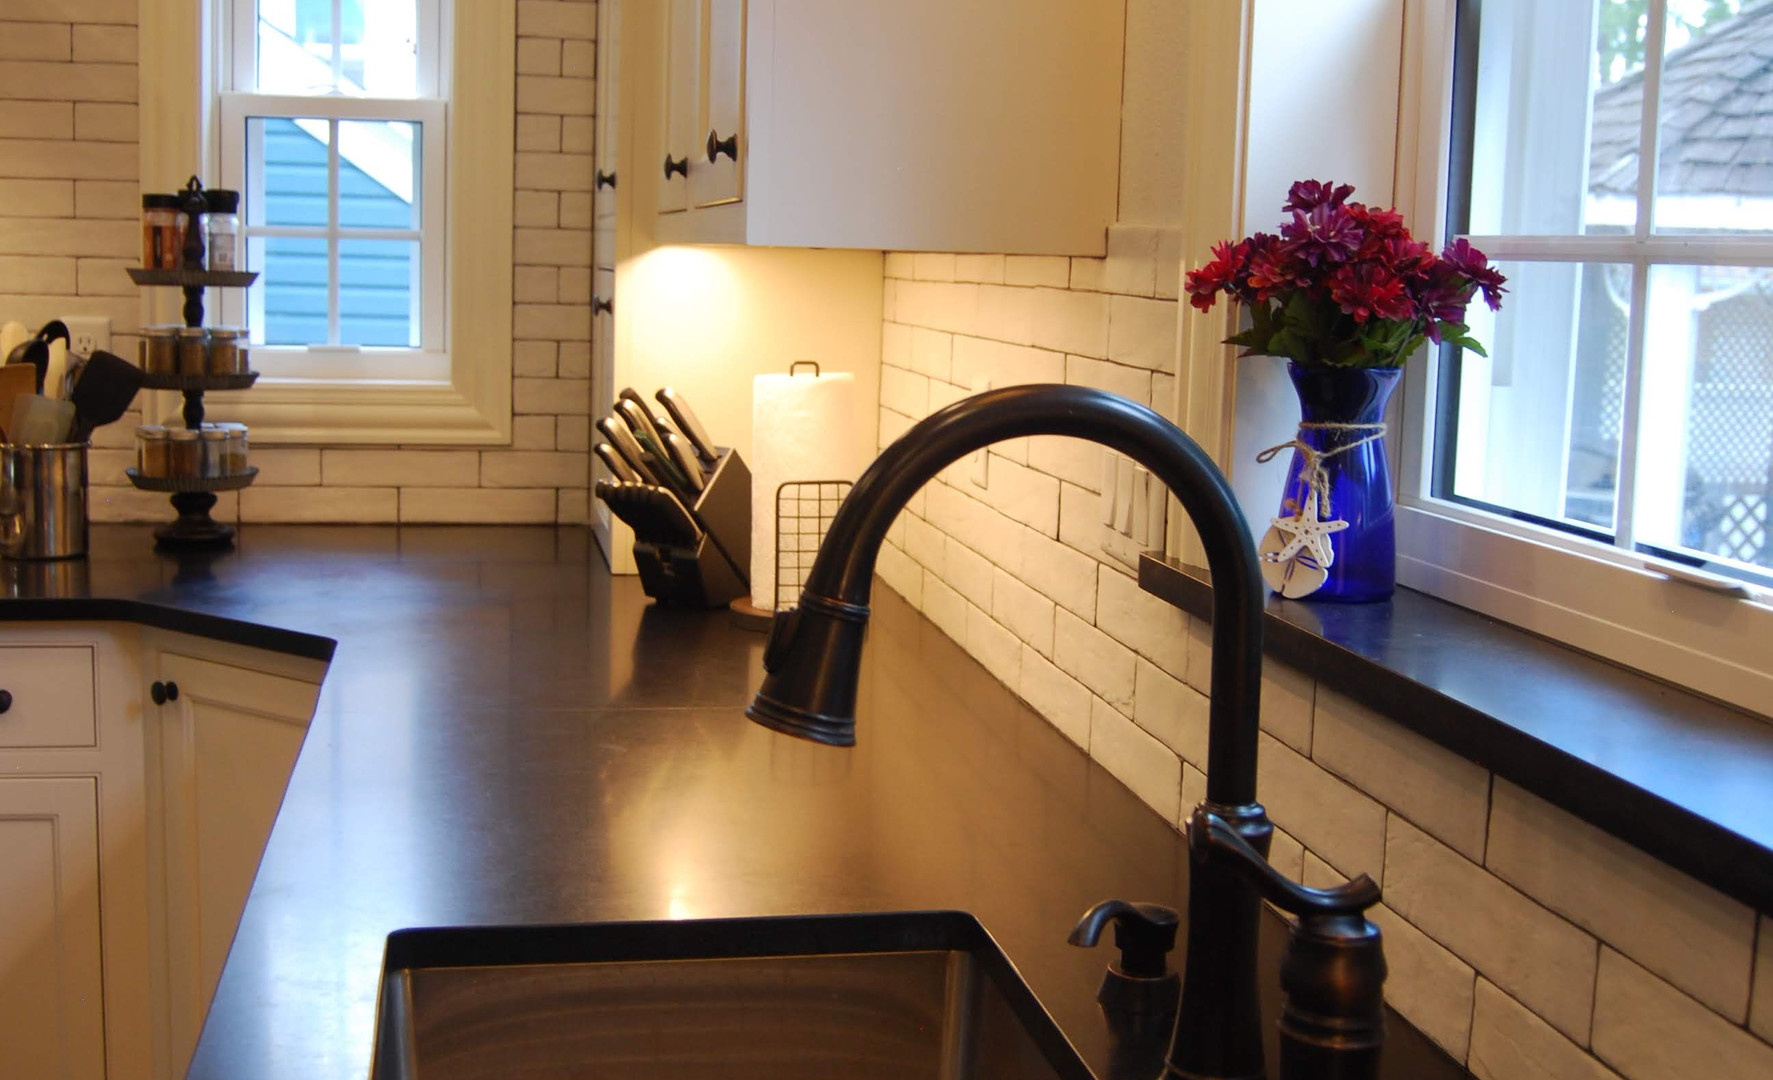 honed black granite countertops.jpg